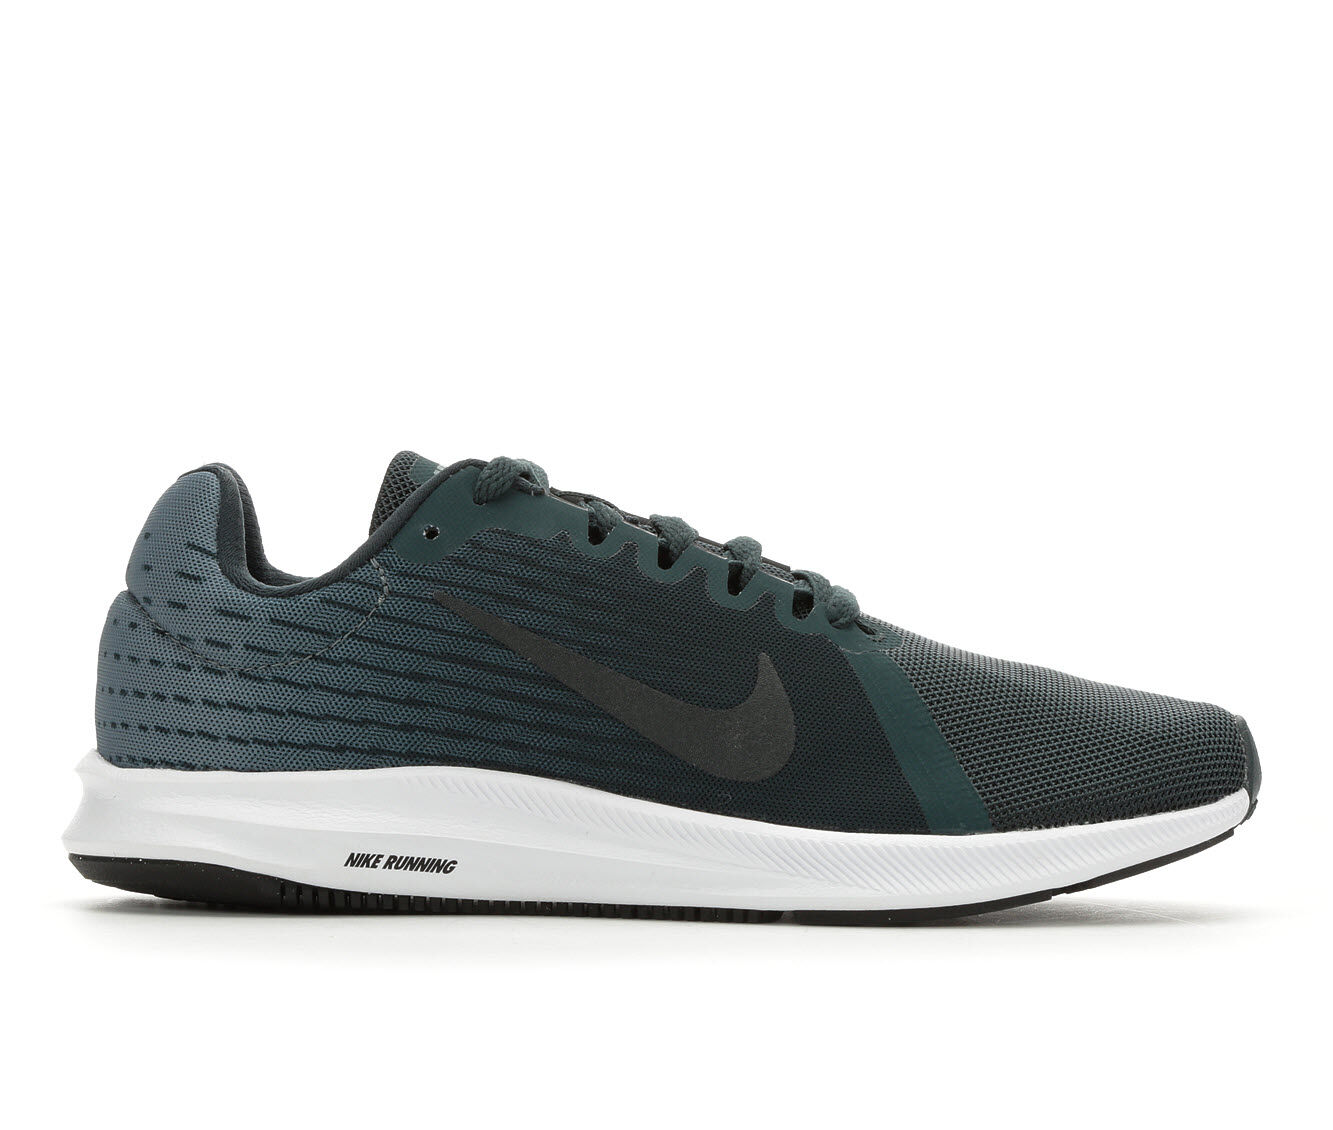 Best Buy Women's Nike Downshifter 8 Running Shoes Jungle/Anth/Gry